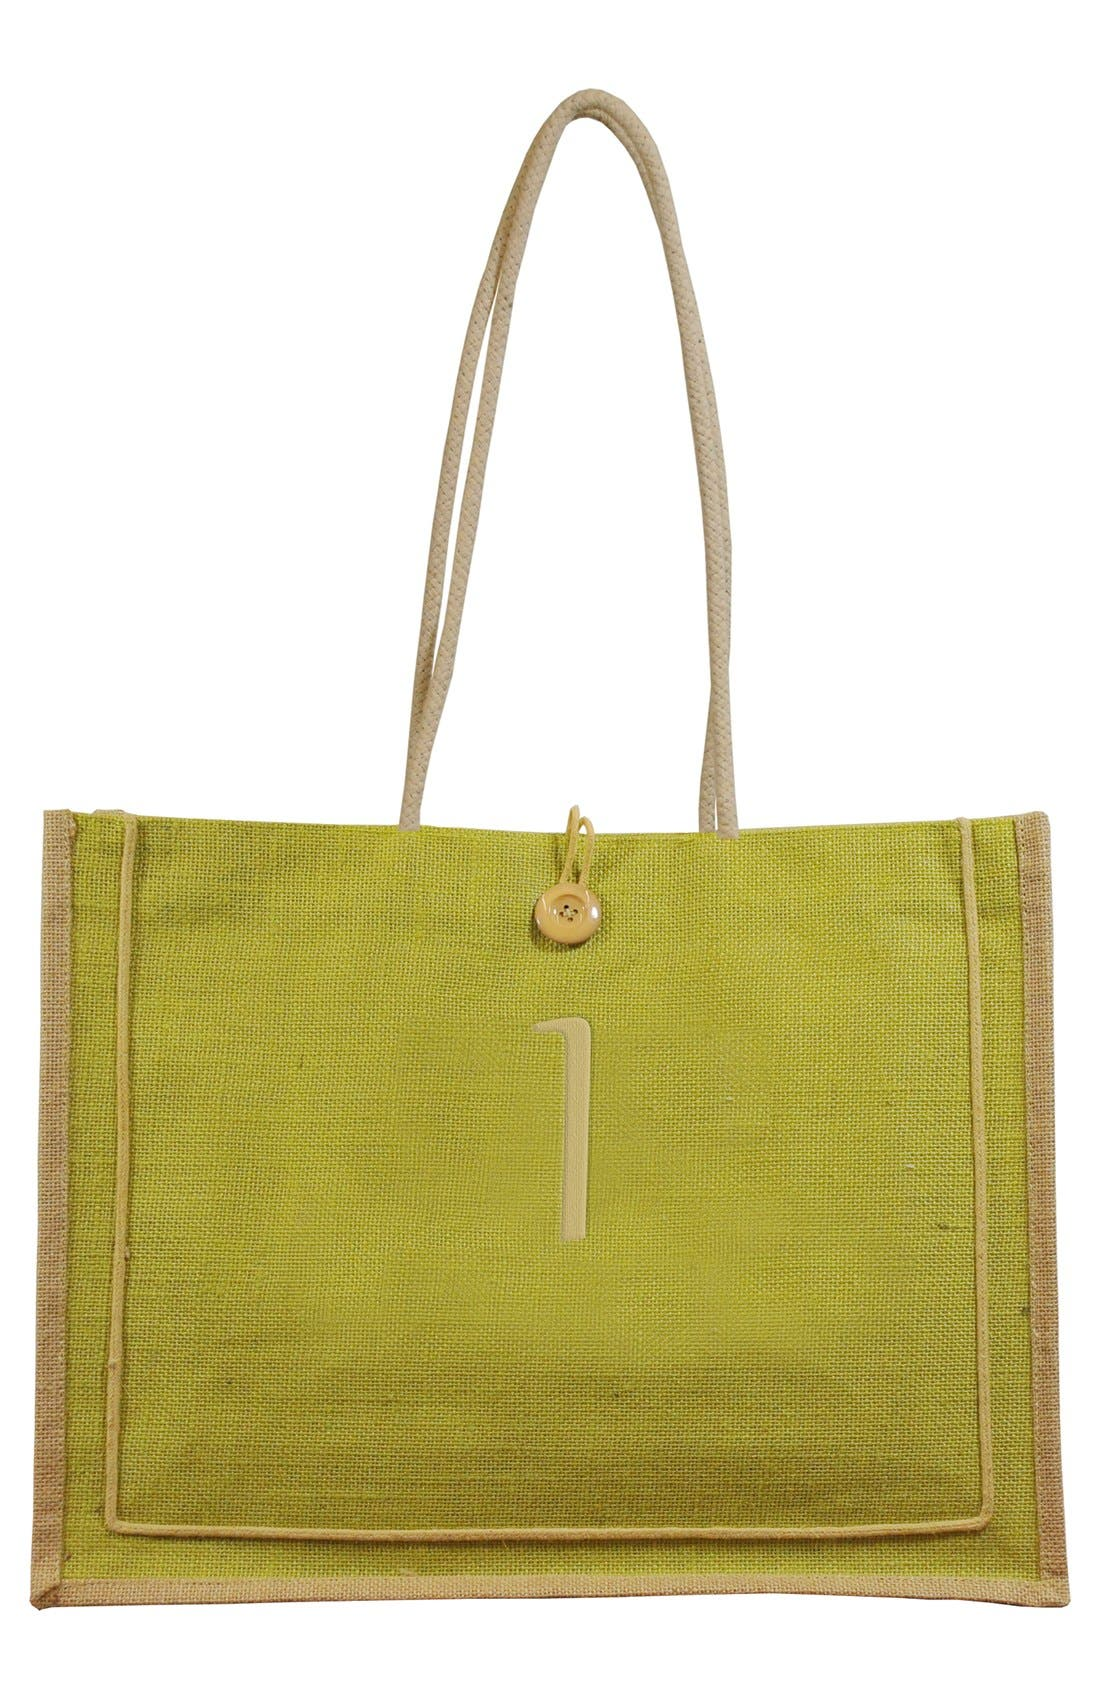 Main Image - Cathy's Concepts 'Newport' Monogrammed Jute Tote